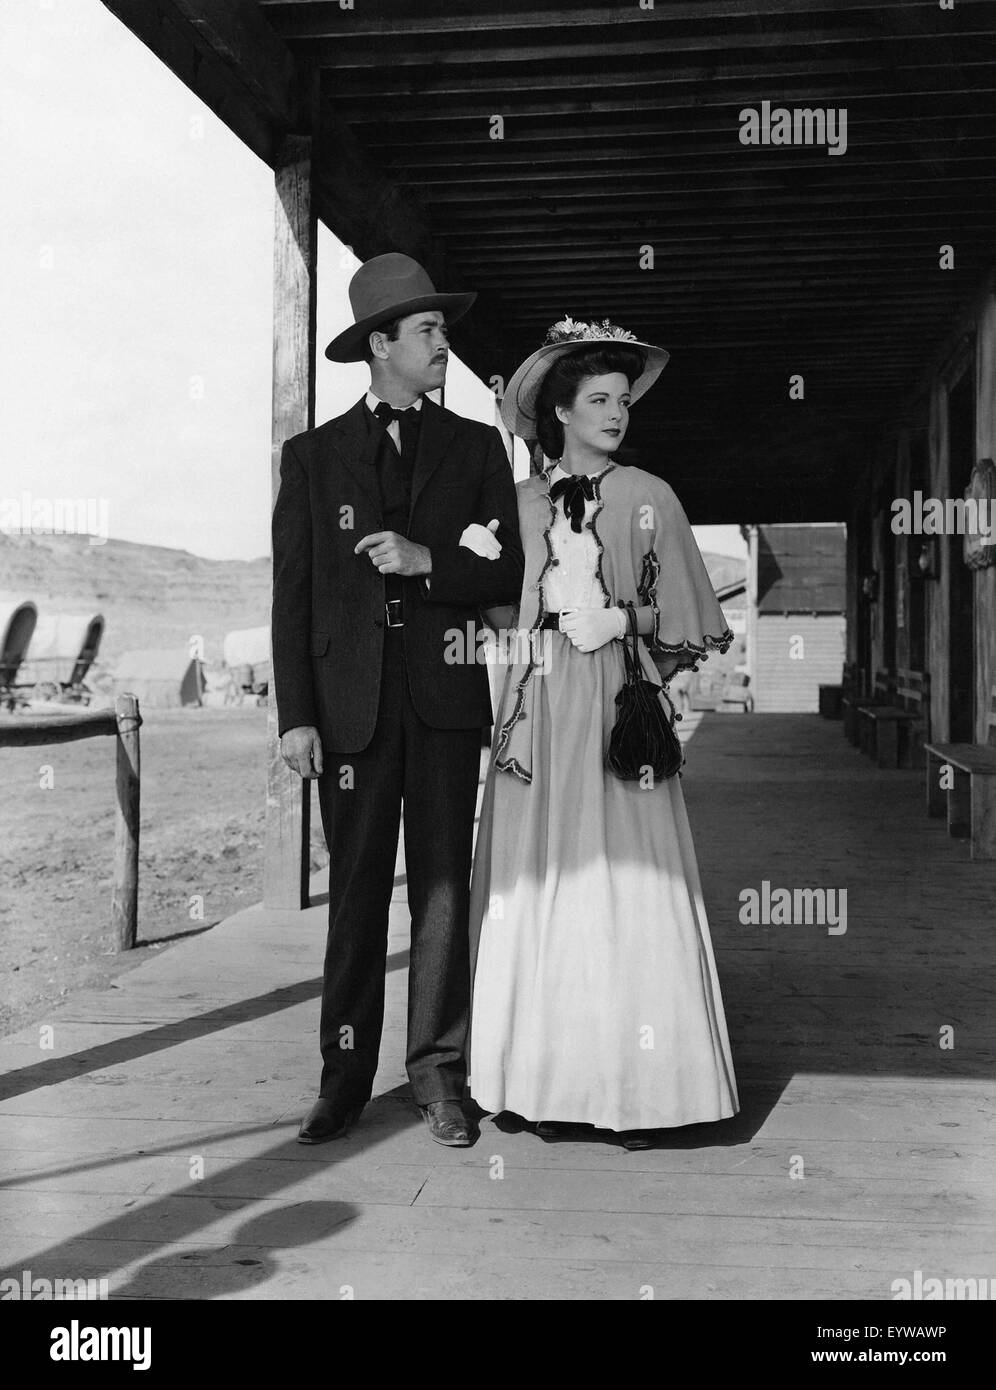 My Darling Clementine ; Year : 1946 USA ; Director : John Ford ; Henry Fonda, Cathy Downs - Stock Image